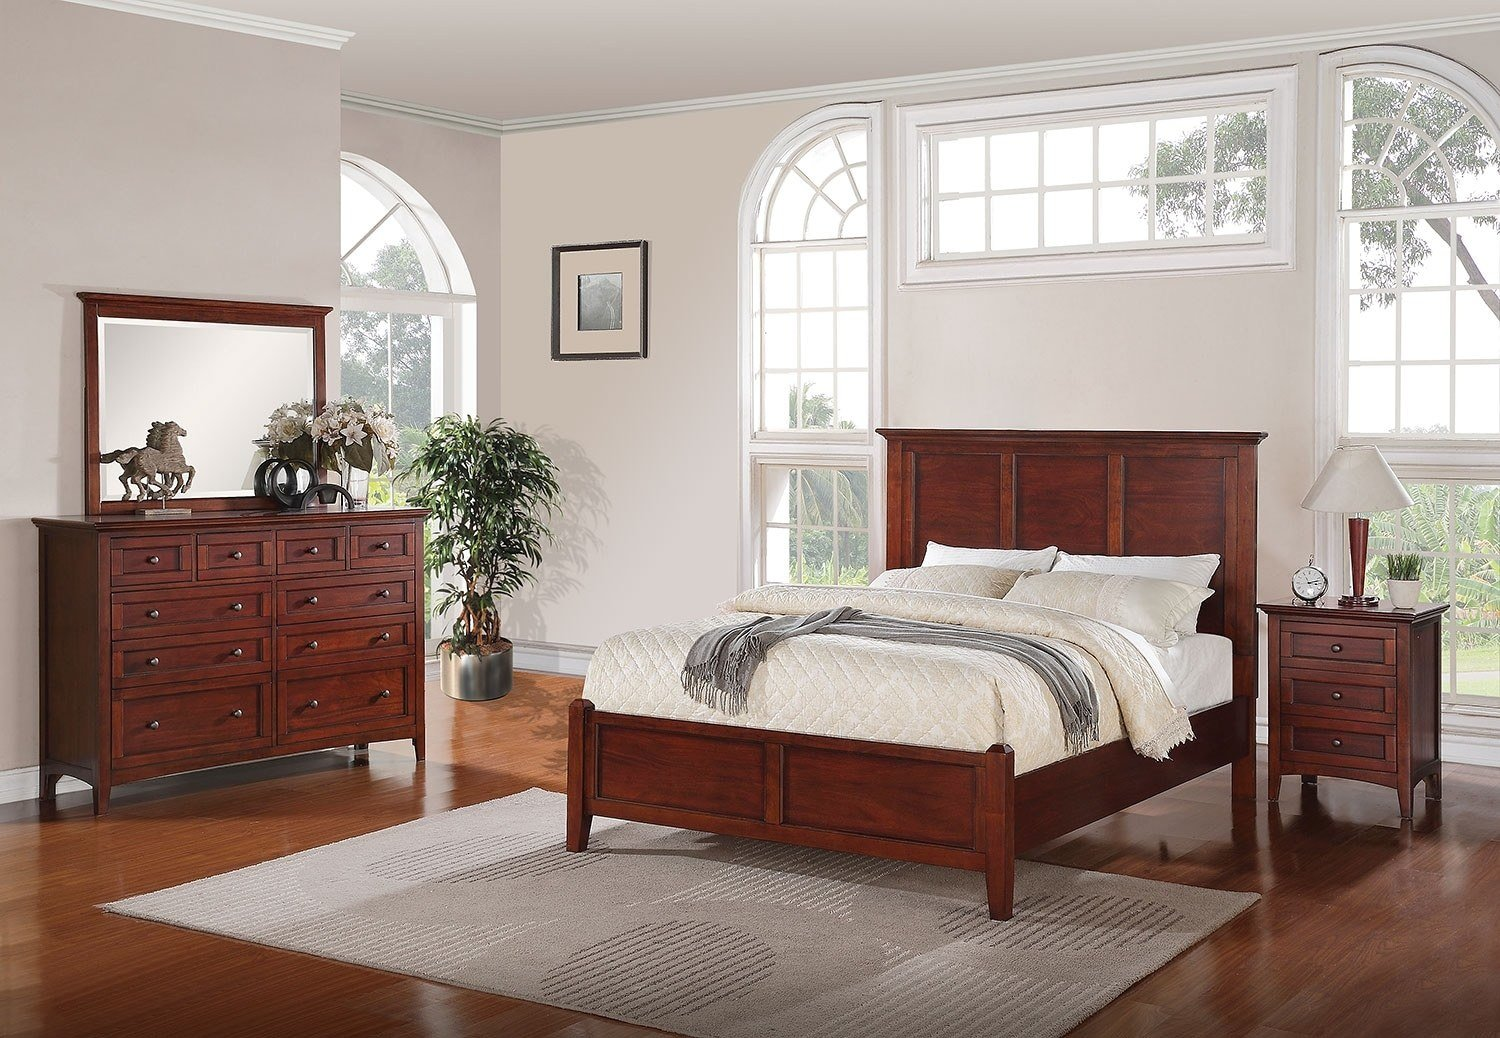 Best Forest Lake 5 Piece Queen Bedroom Set Mahogany Leon S With Pictures